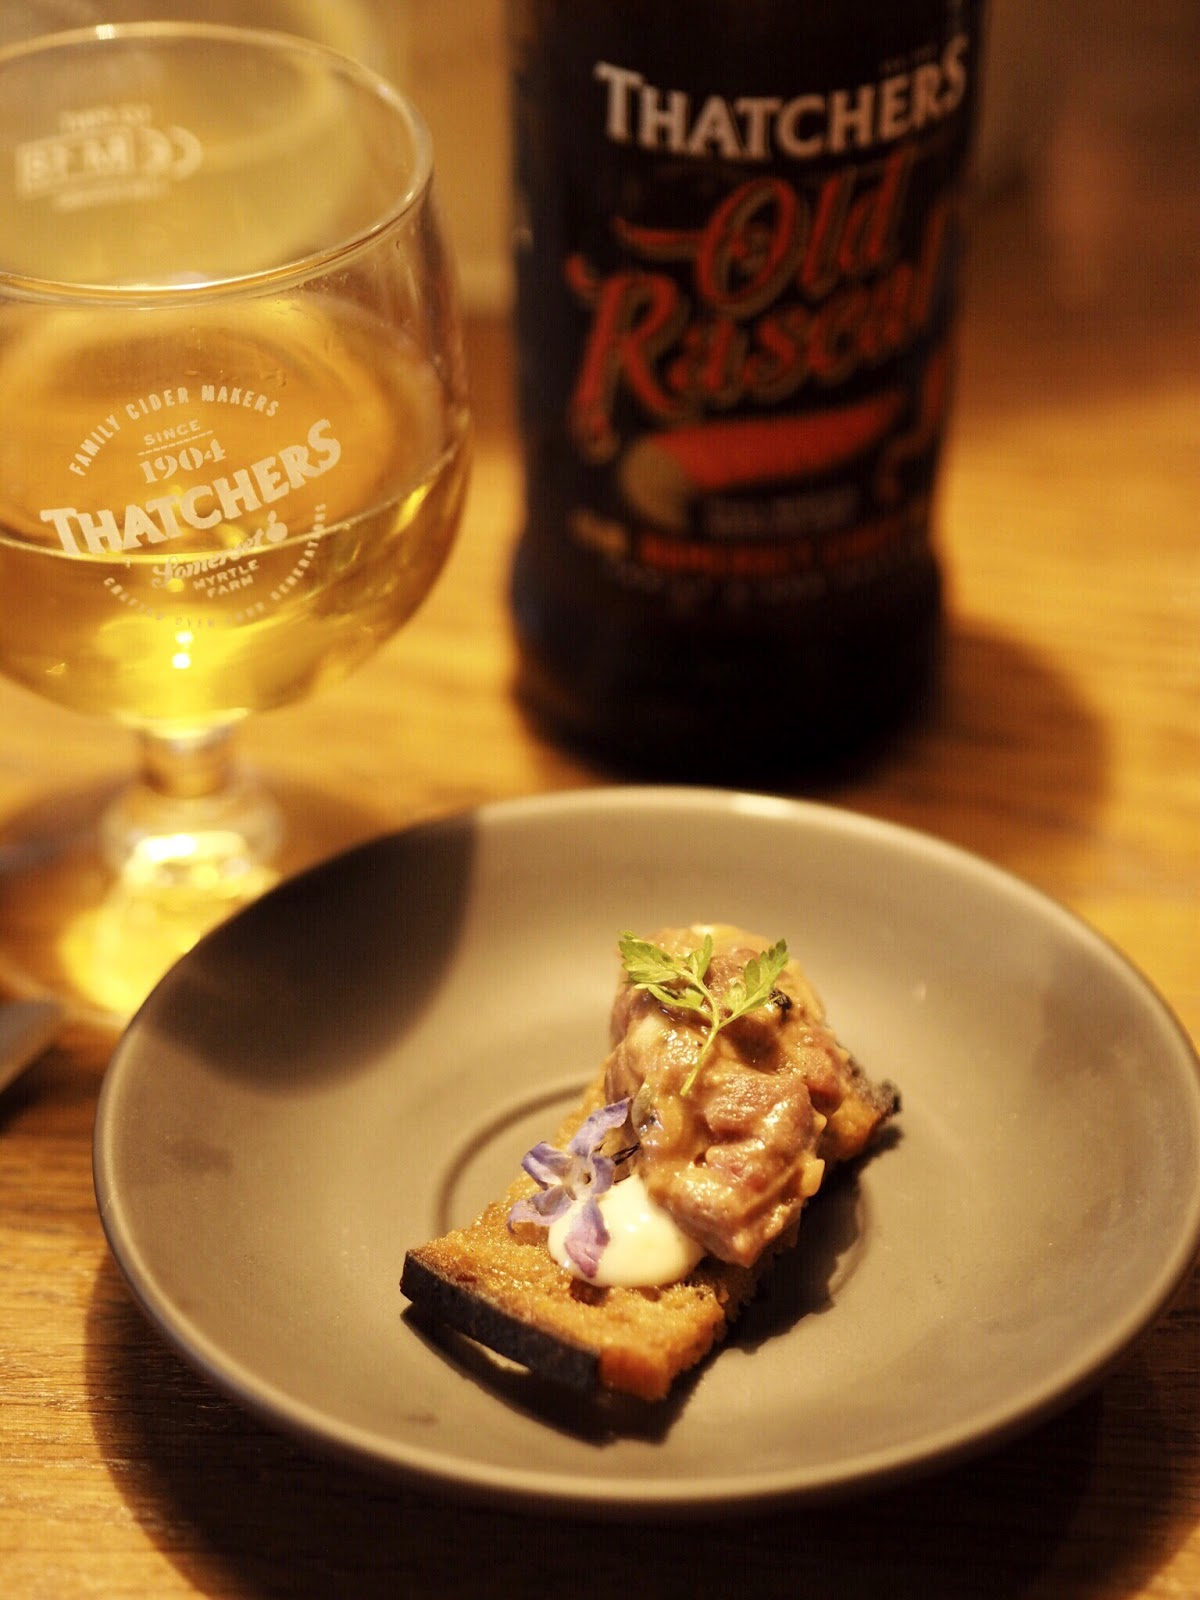 Thatchers Old Rascal with Smoked Aged Steak Tartare